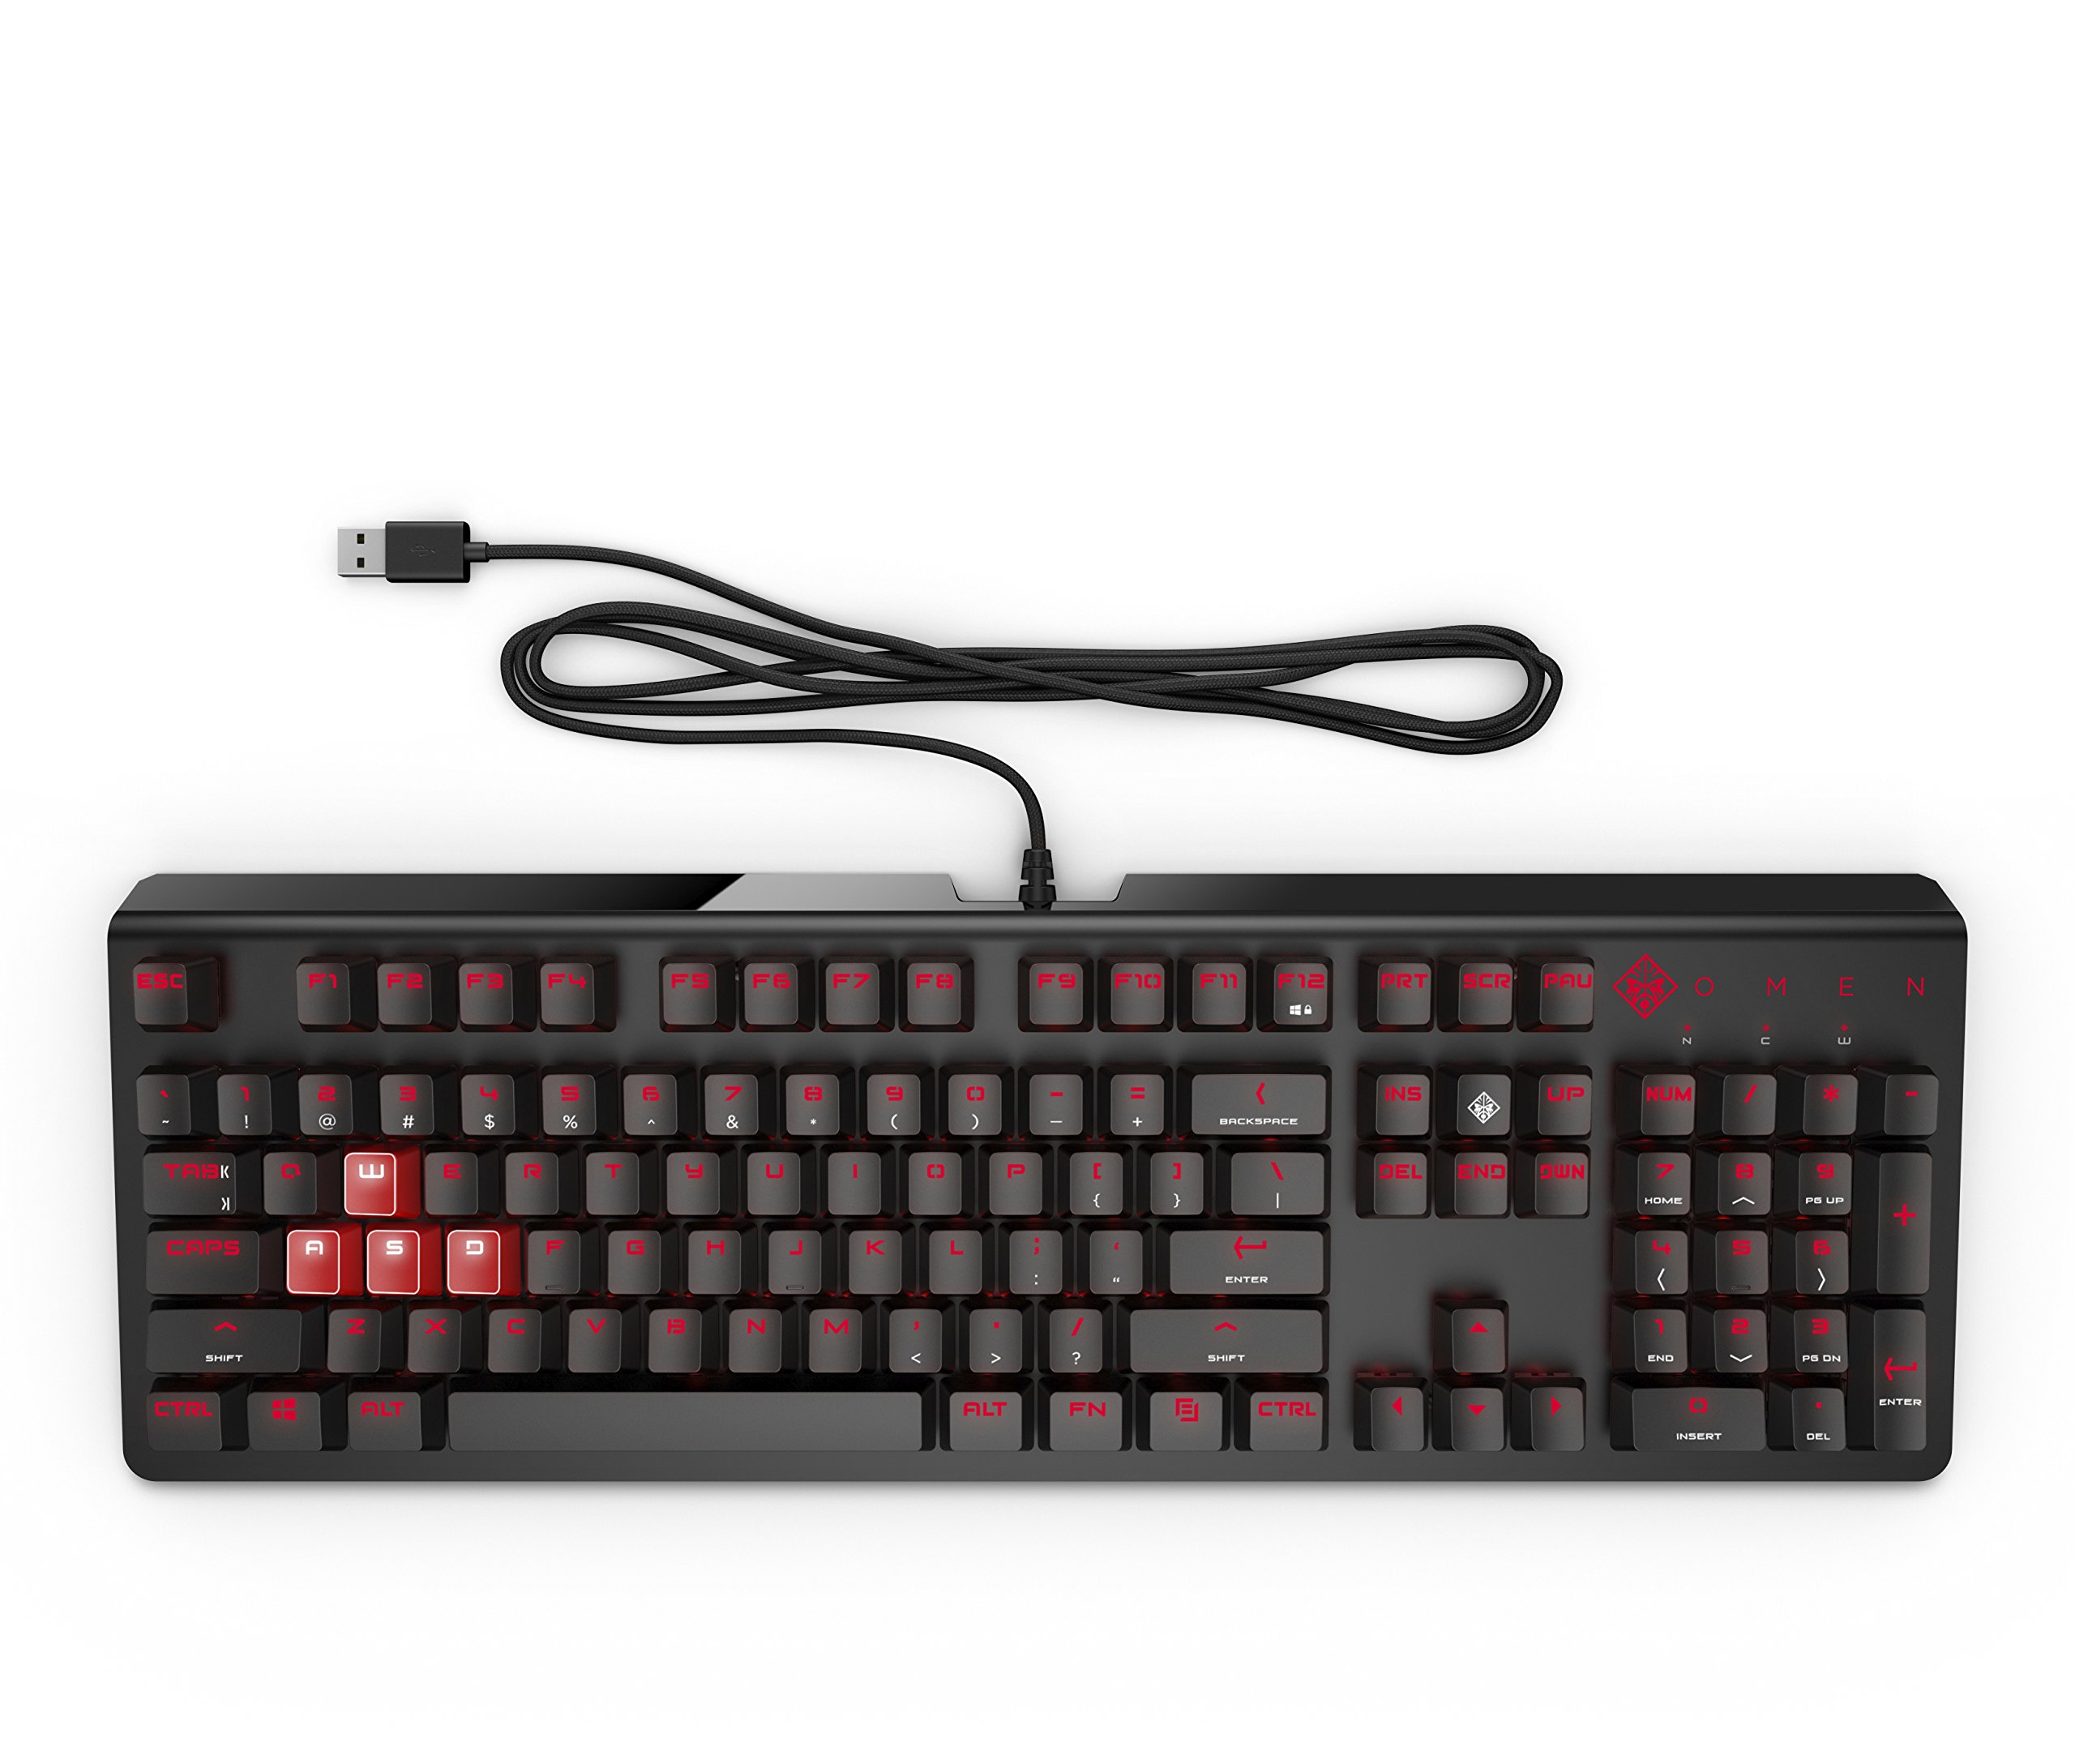 OMEN by HP Wired USB Gaming Keyboard 1100 (Black/Red) by HP